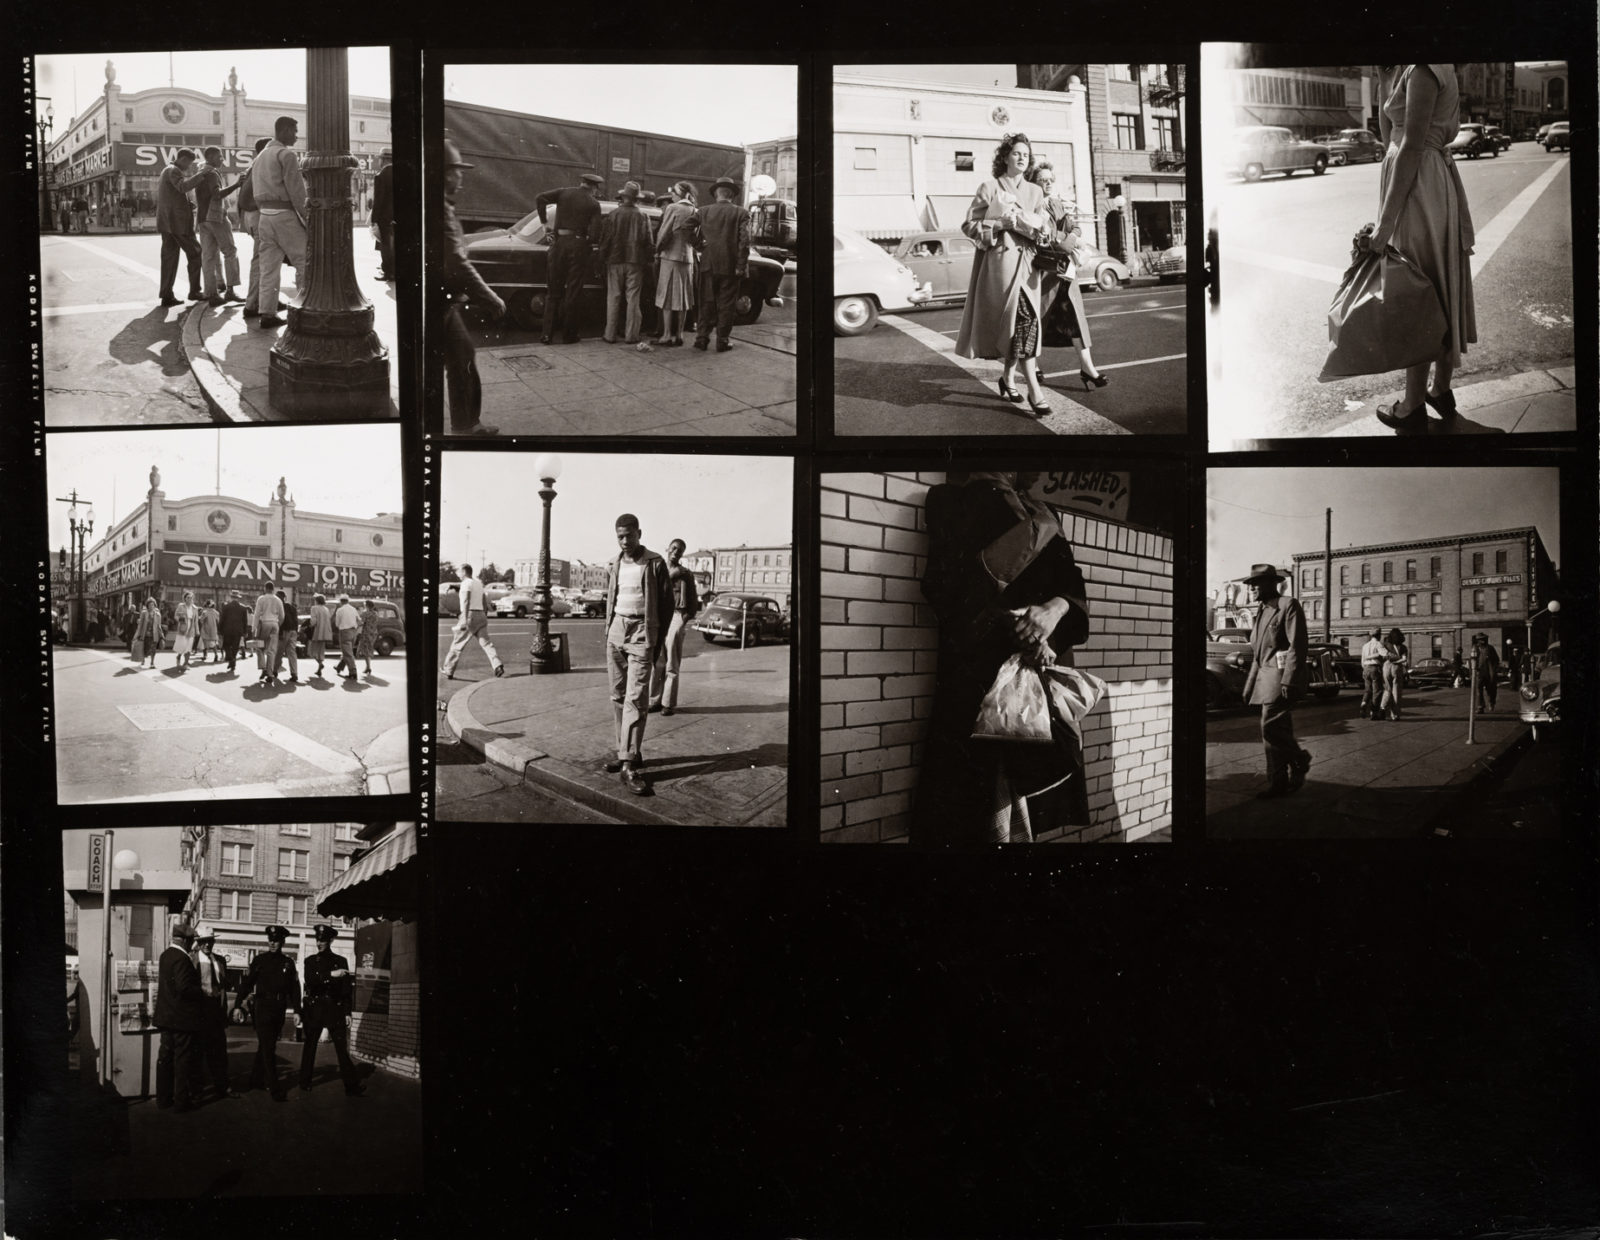 Downtown Oakland (from the Consumers and Relationships Series) Oakland, CA, 1951, Dorothea Lange, Gelatin silver print, Gift of Paul S. Taylor 7.75 in x 7.625 in. A67.137.93132 © The Dorothea Lange Collection, the Oakland Museum of California.